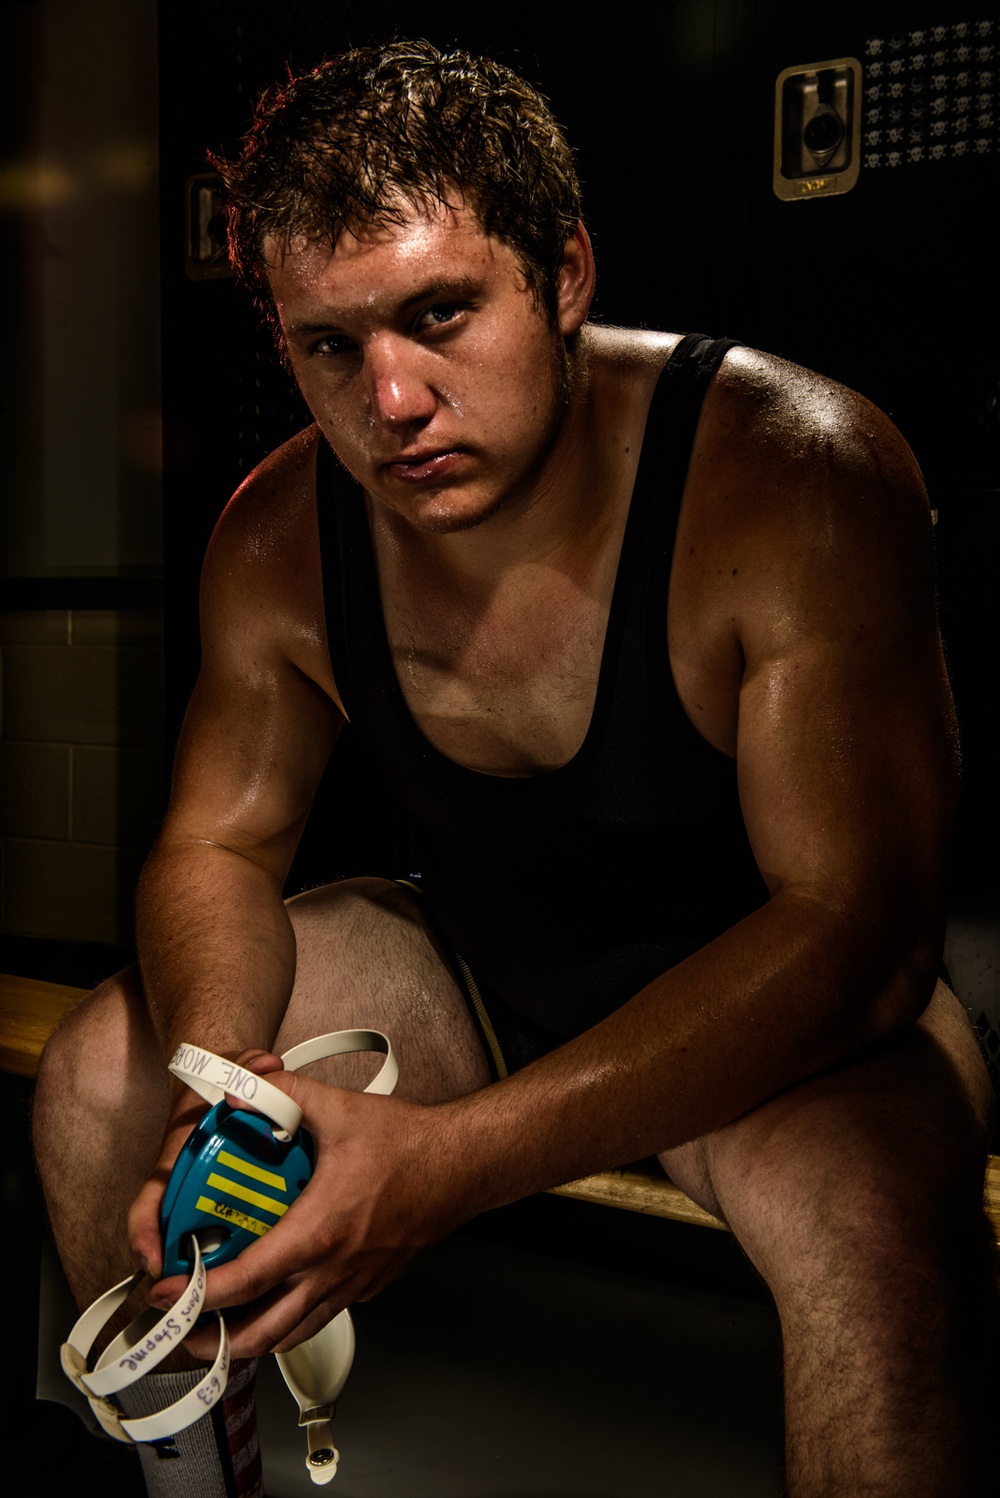 Champion wrestler portrait in locker room